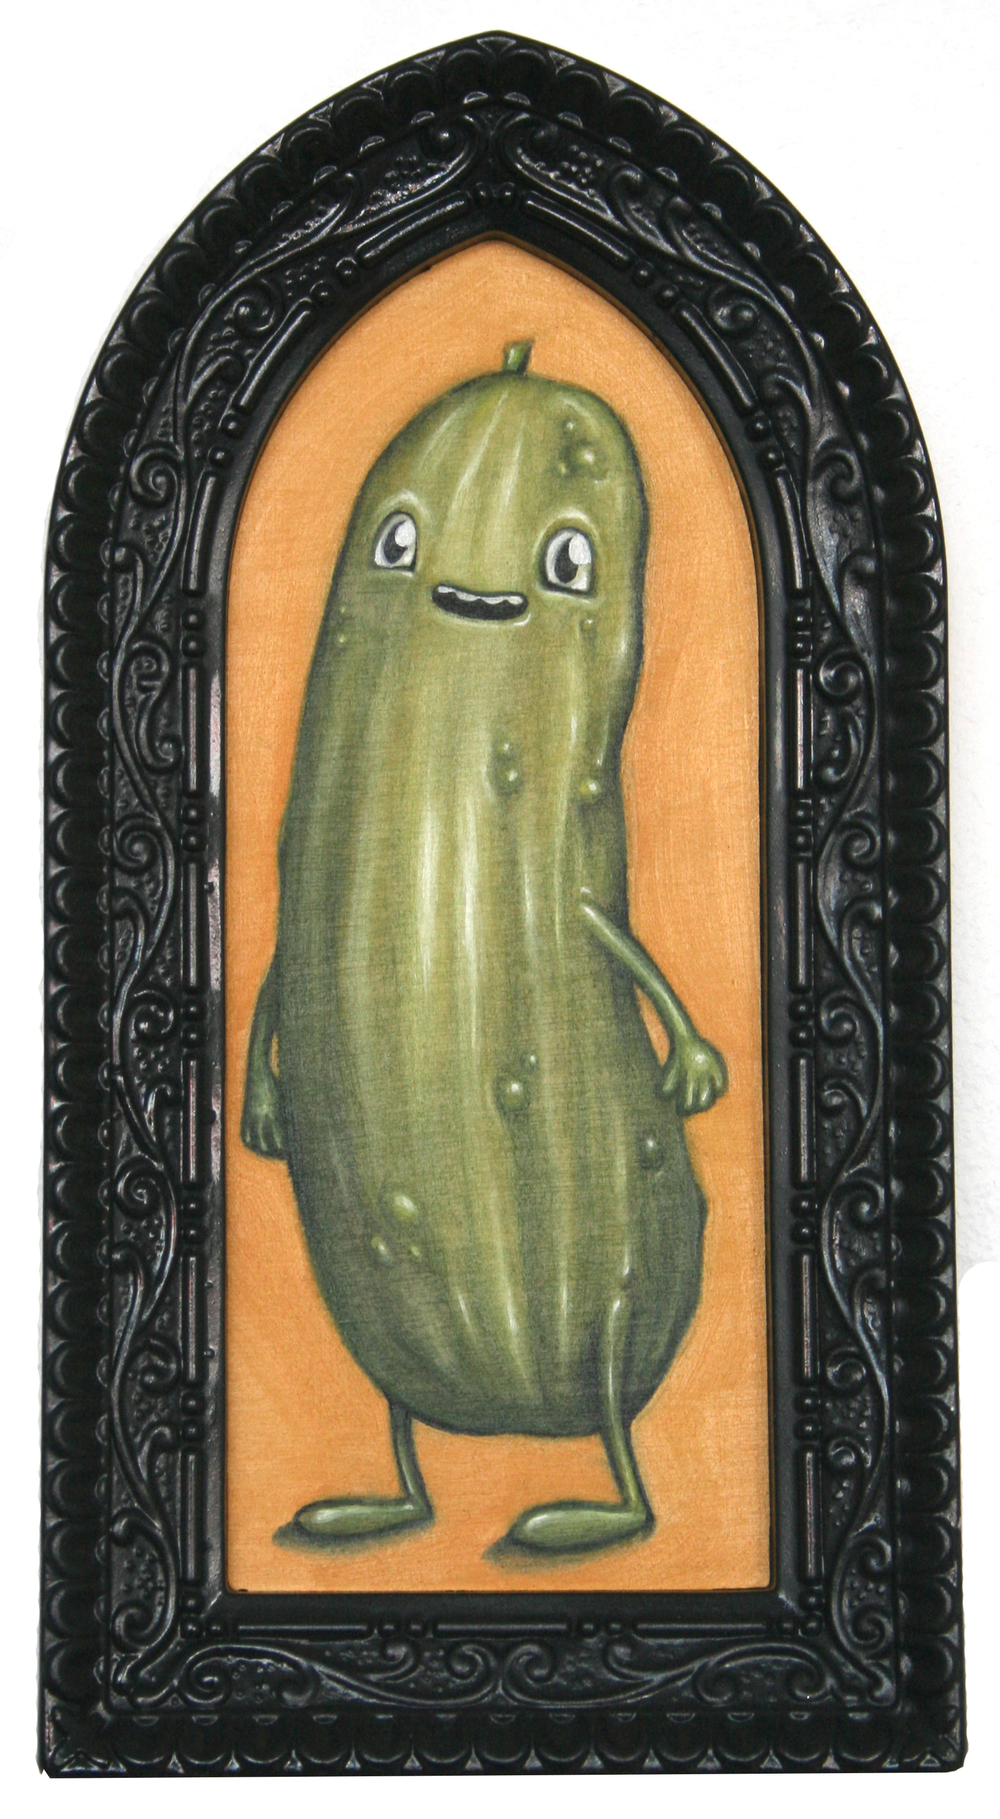 The Proudest Pickle